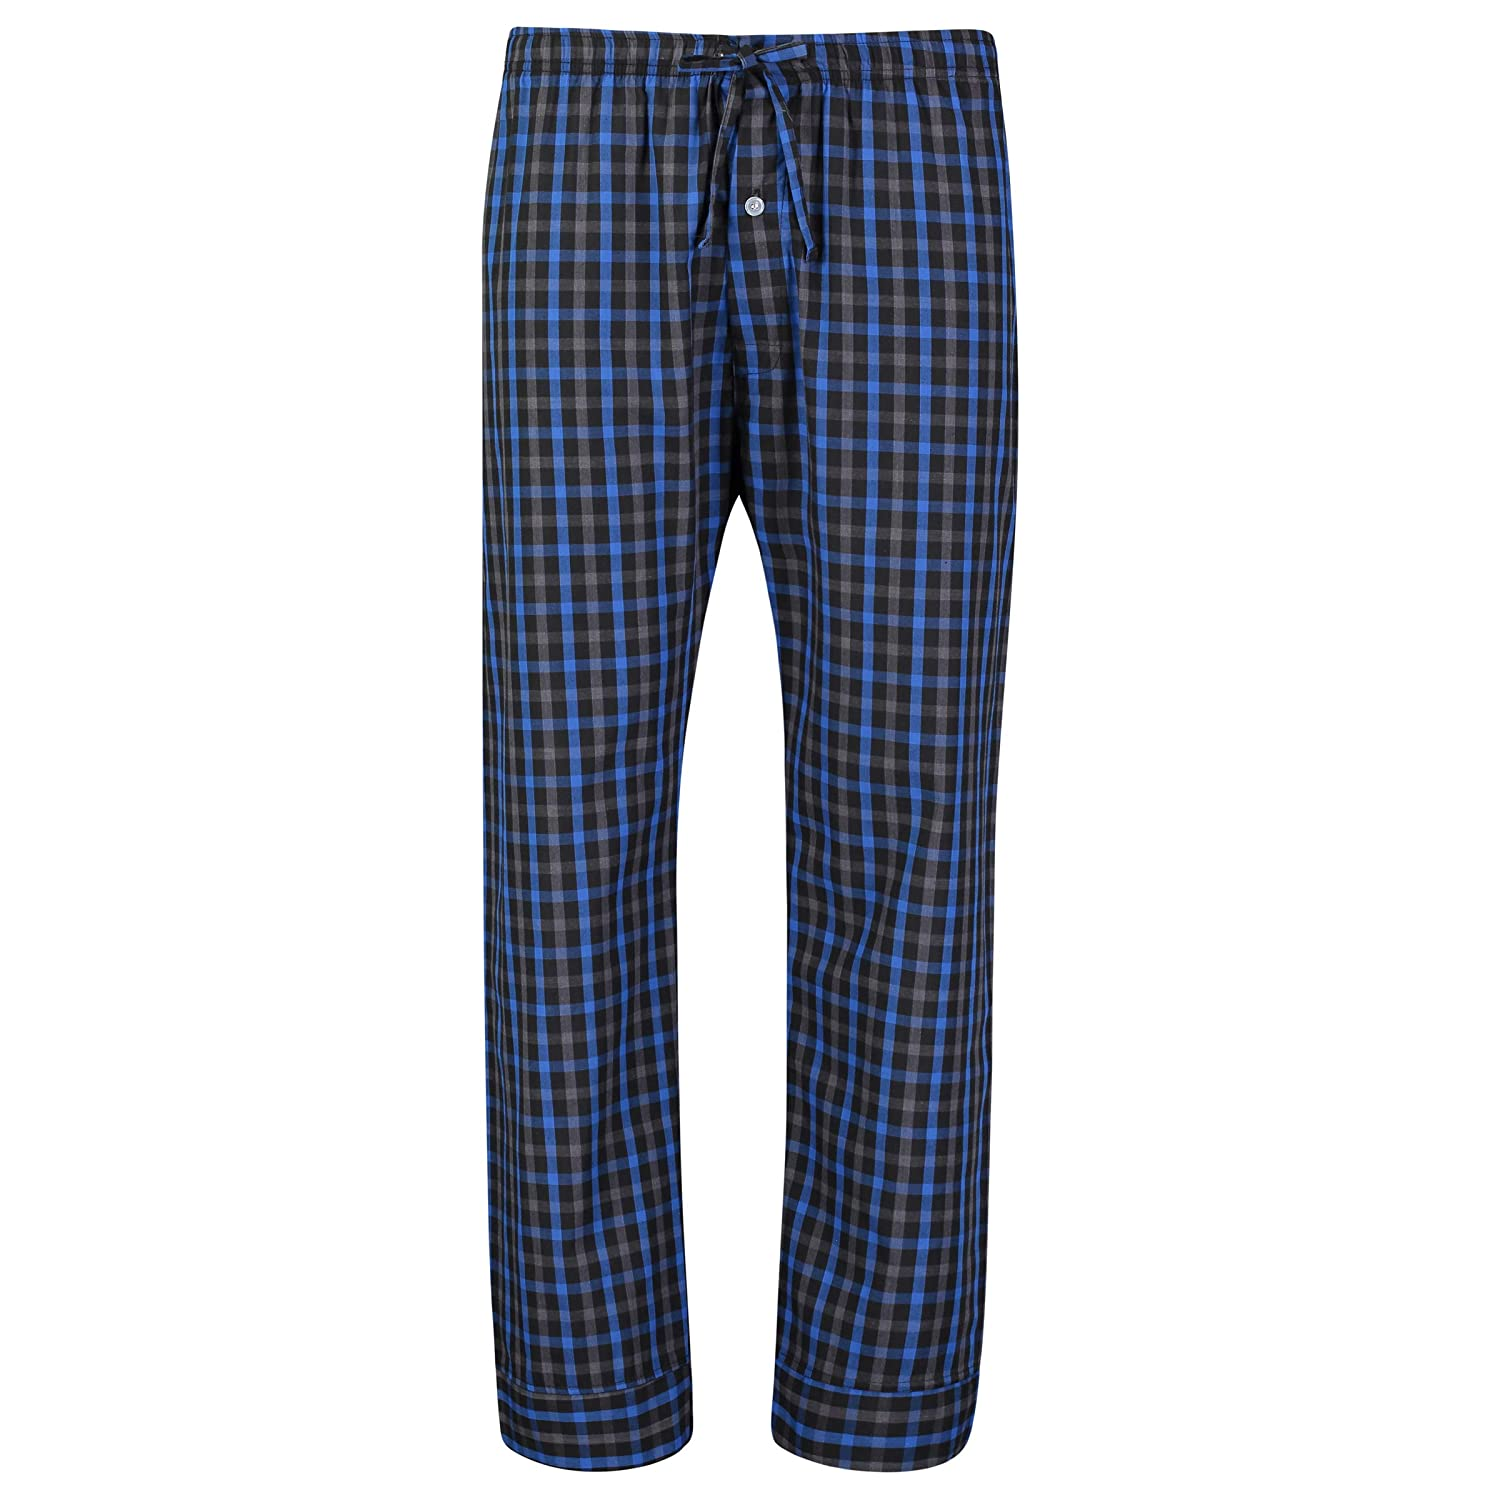 Top 10 wholesale Lightweight Pajama Pants - Chinabrands.com a0ea40d05